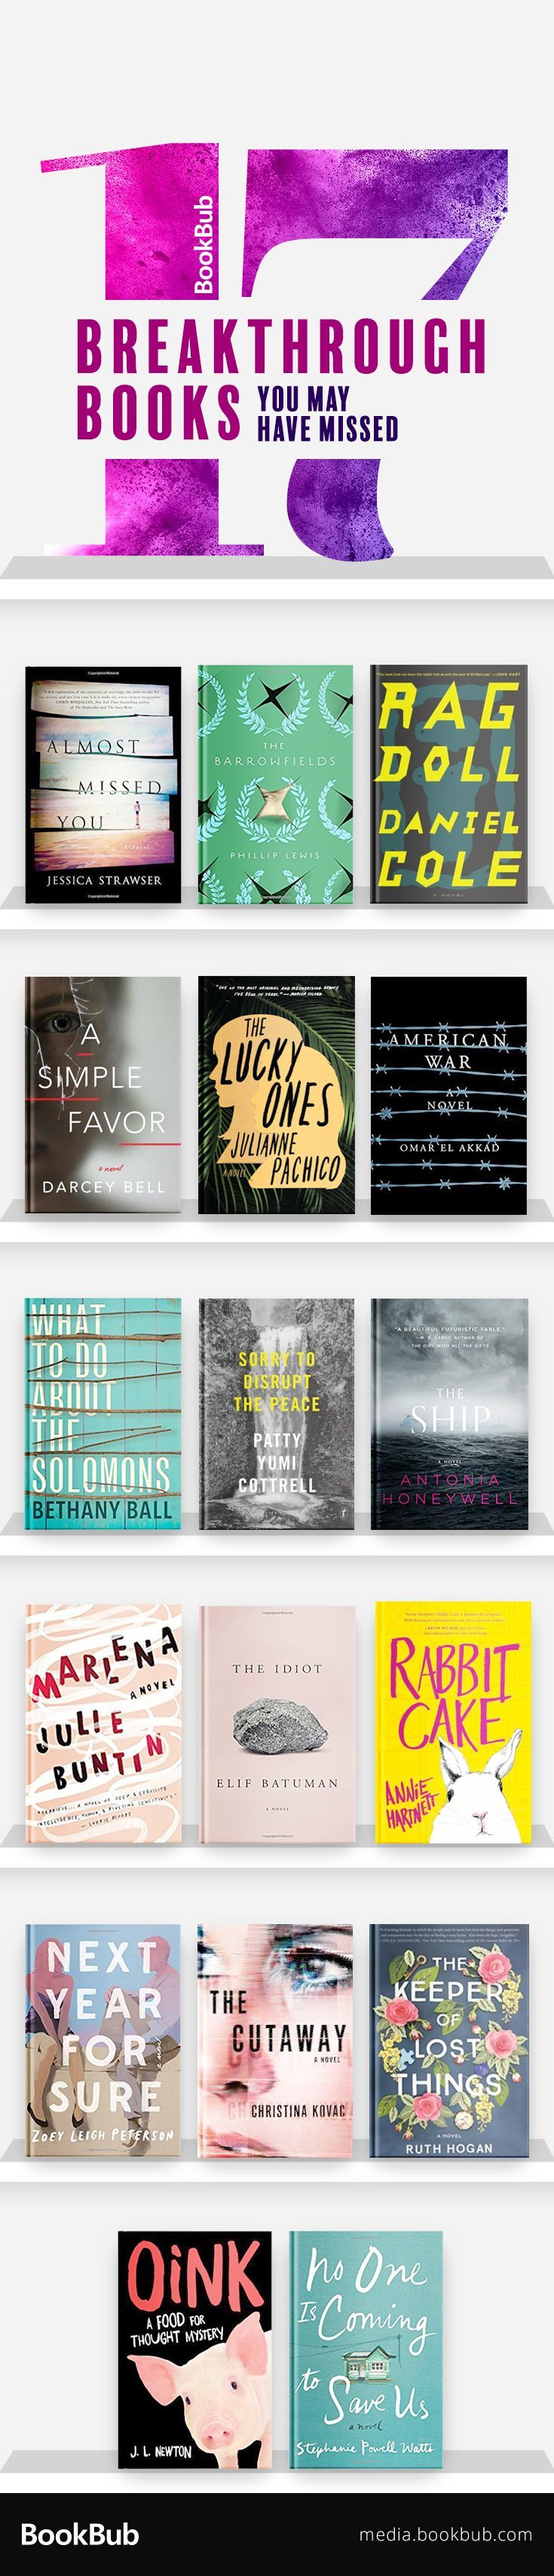 17 Breakthrough Books You Might Have Missed This Spring